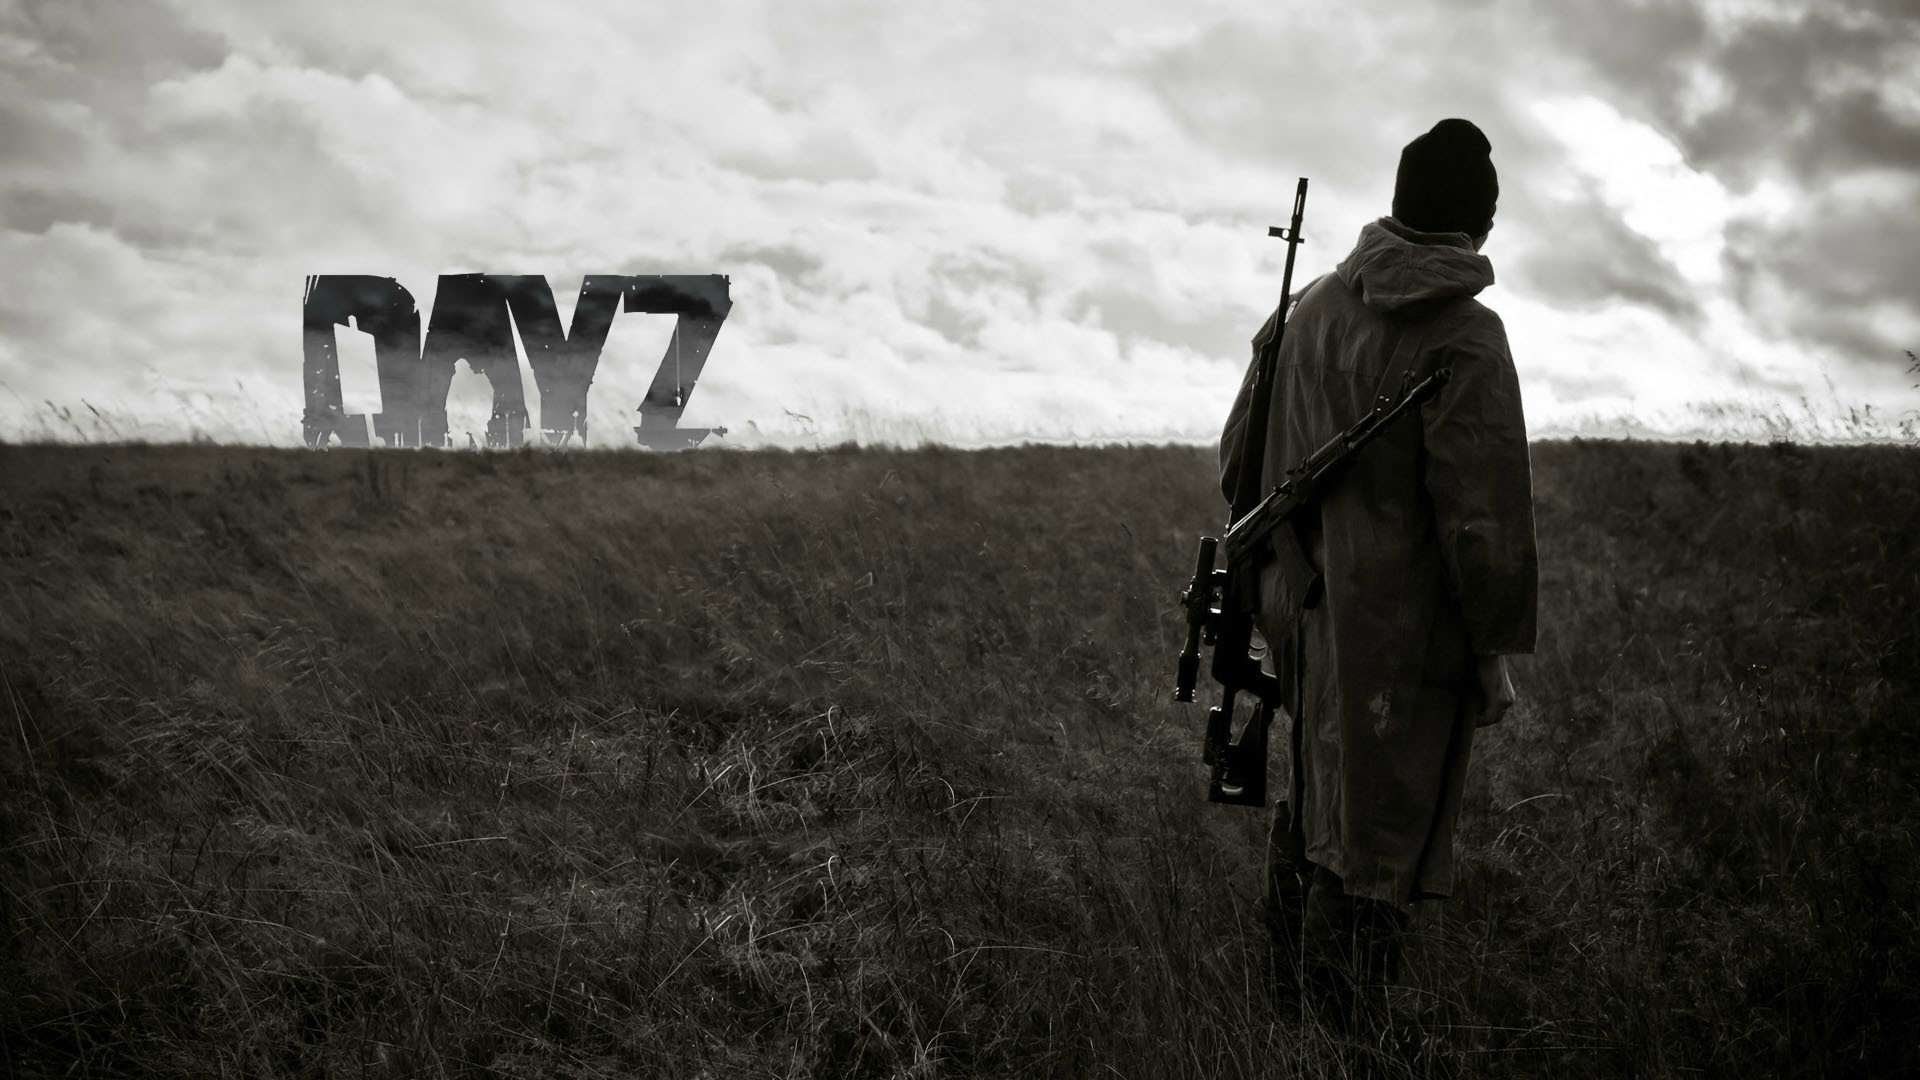 dayz DayZ Forums Have Been Hacked, User Info And Passwords Stolen